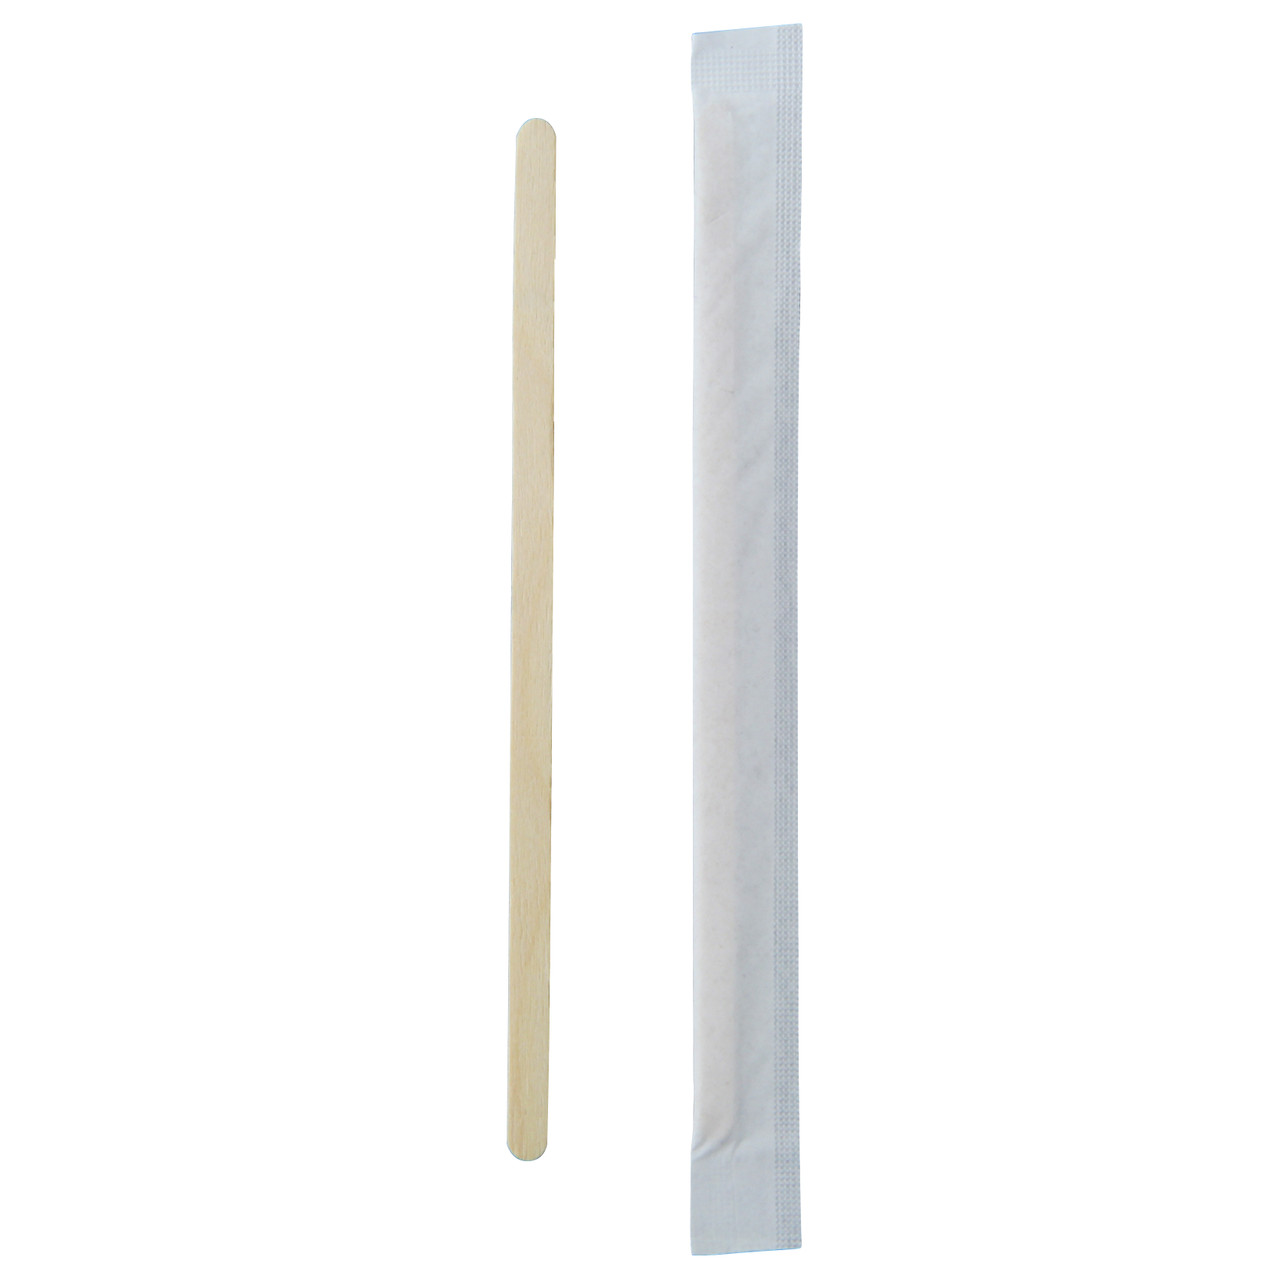 Individually Wrapped Wooden Coffee Stirrers - L:5.5 x W:.2in